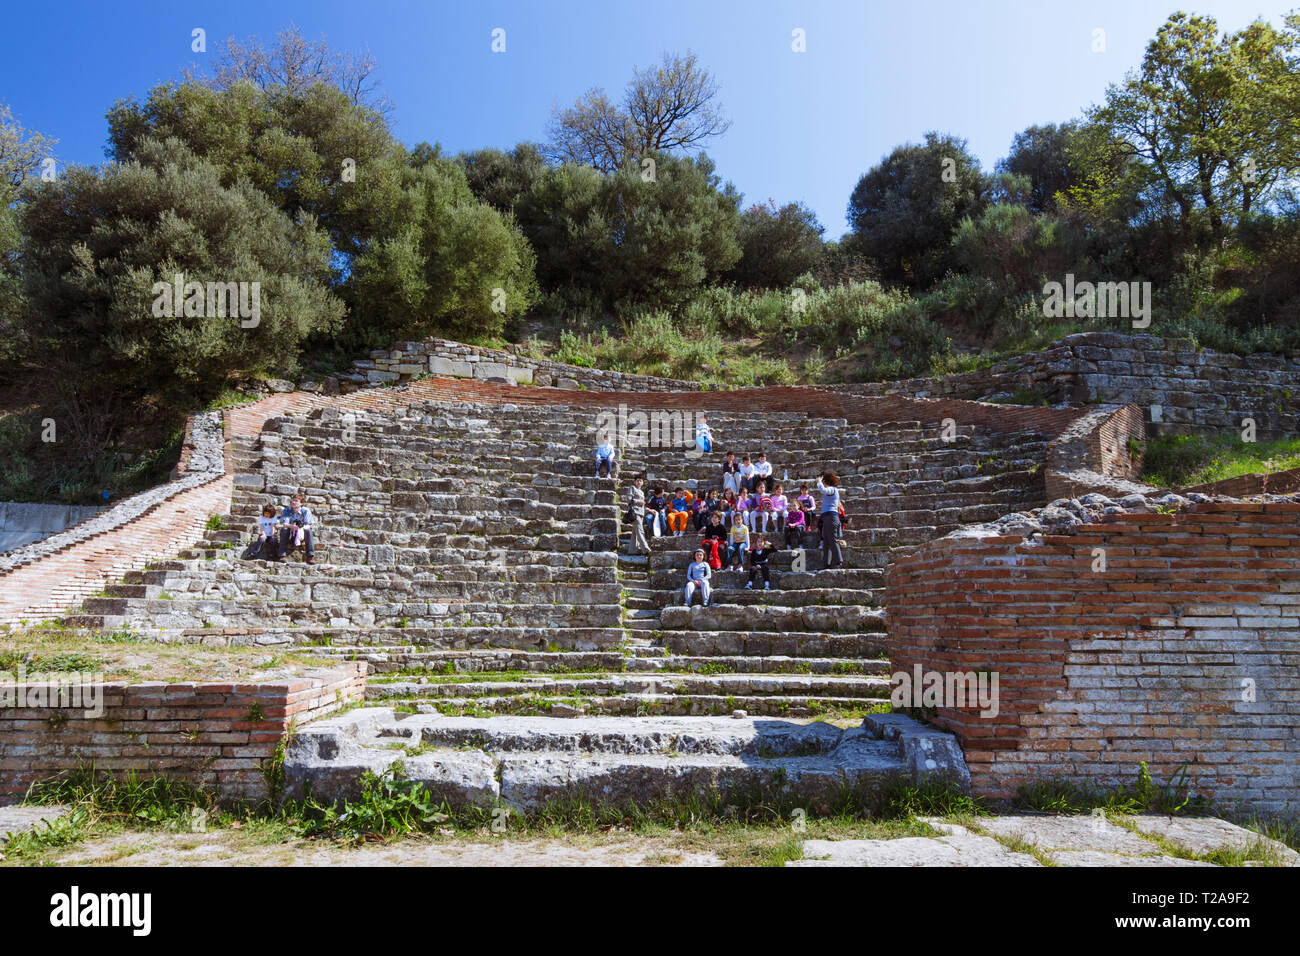 Apollonia, Fier, Albania : A group of teenagers stand at the ruins of the Odeon Theater. Founded by Greeks in 588 BC, Apollonia grew into an important - Stock Image